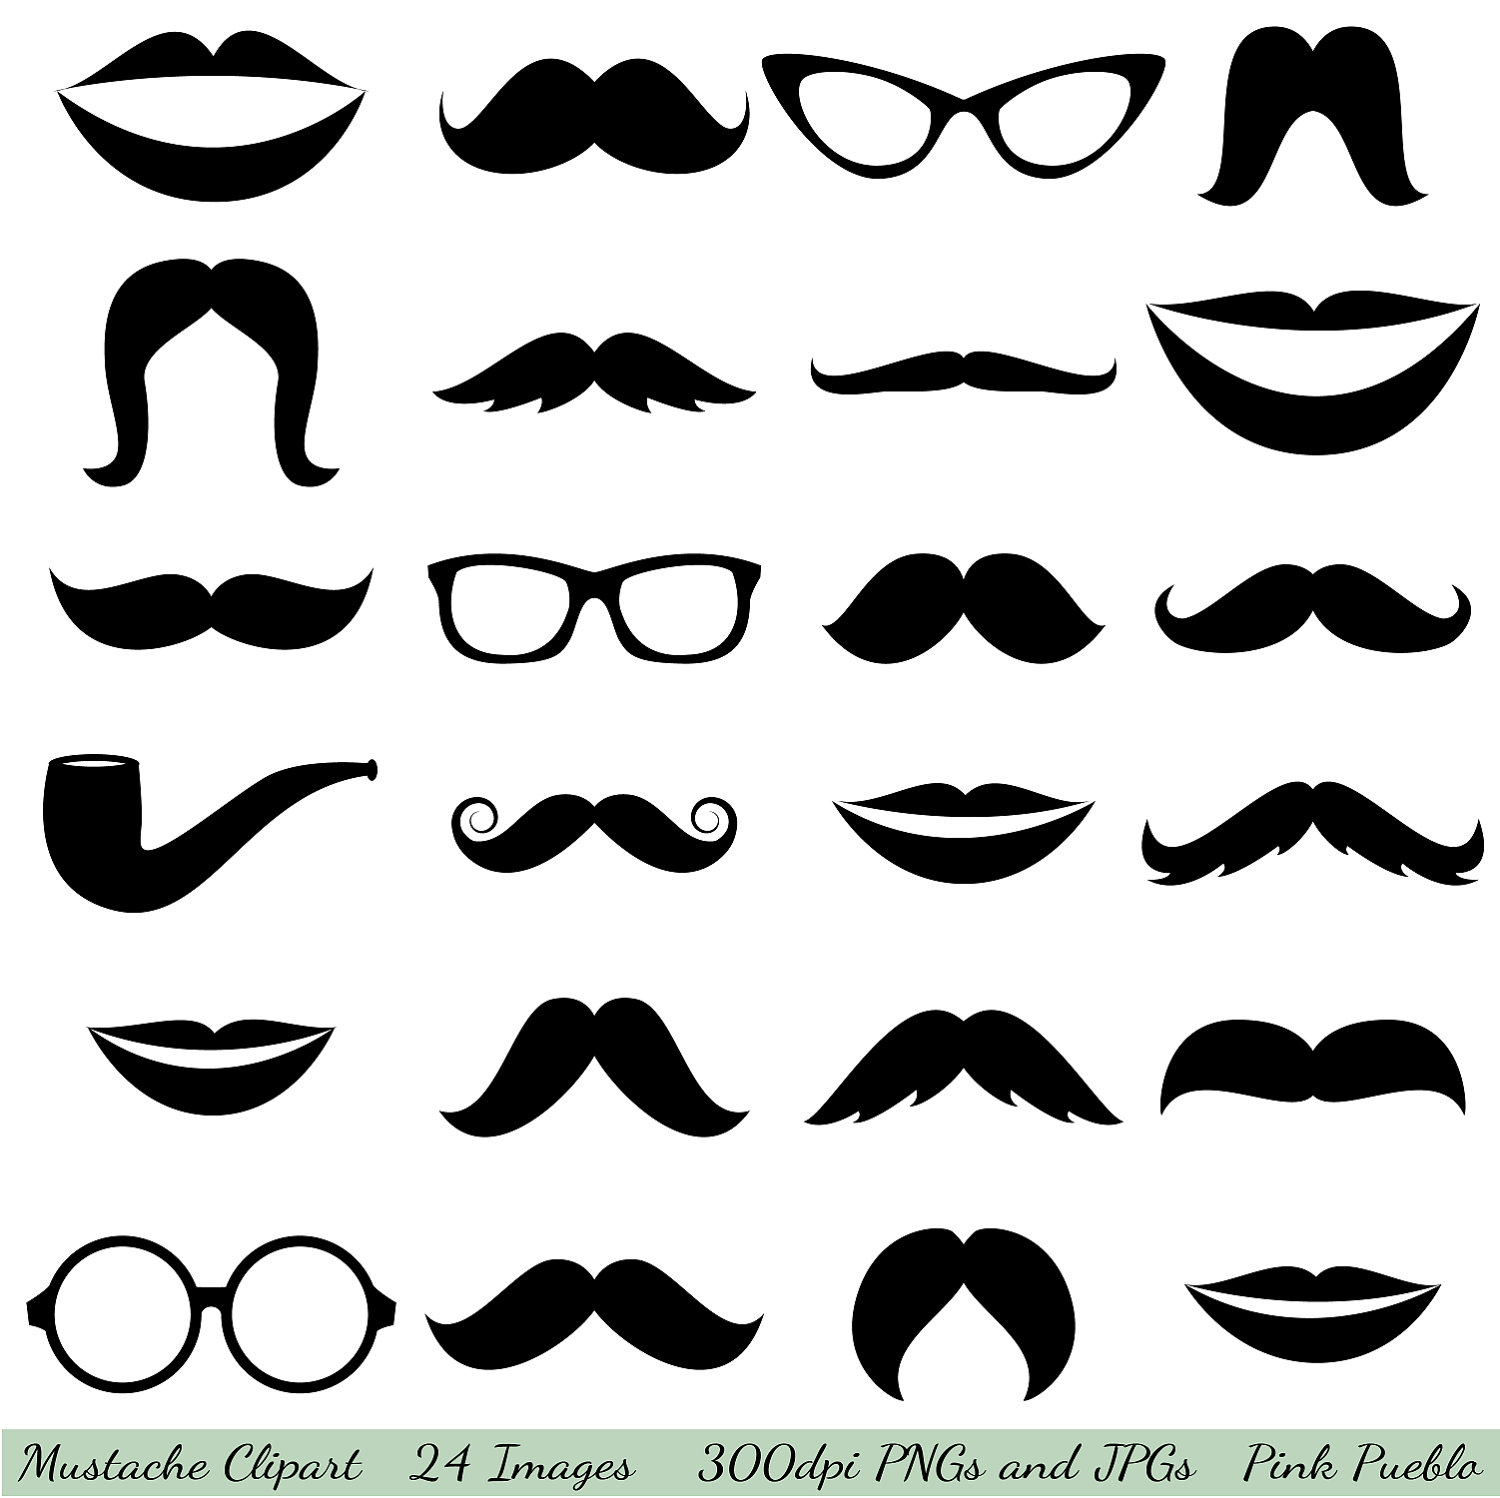 Geek clipart mustache glass Looking collection clipart mustache with